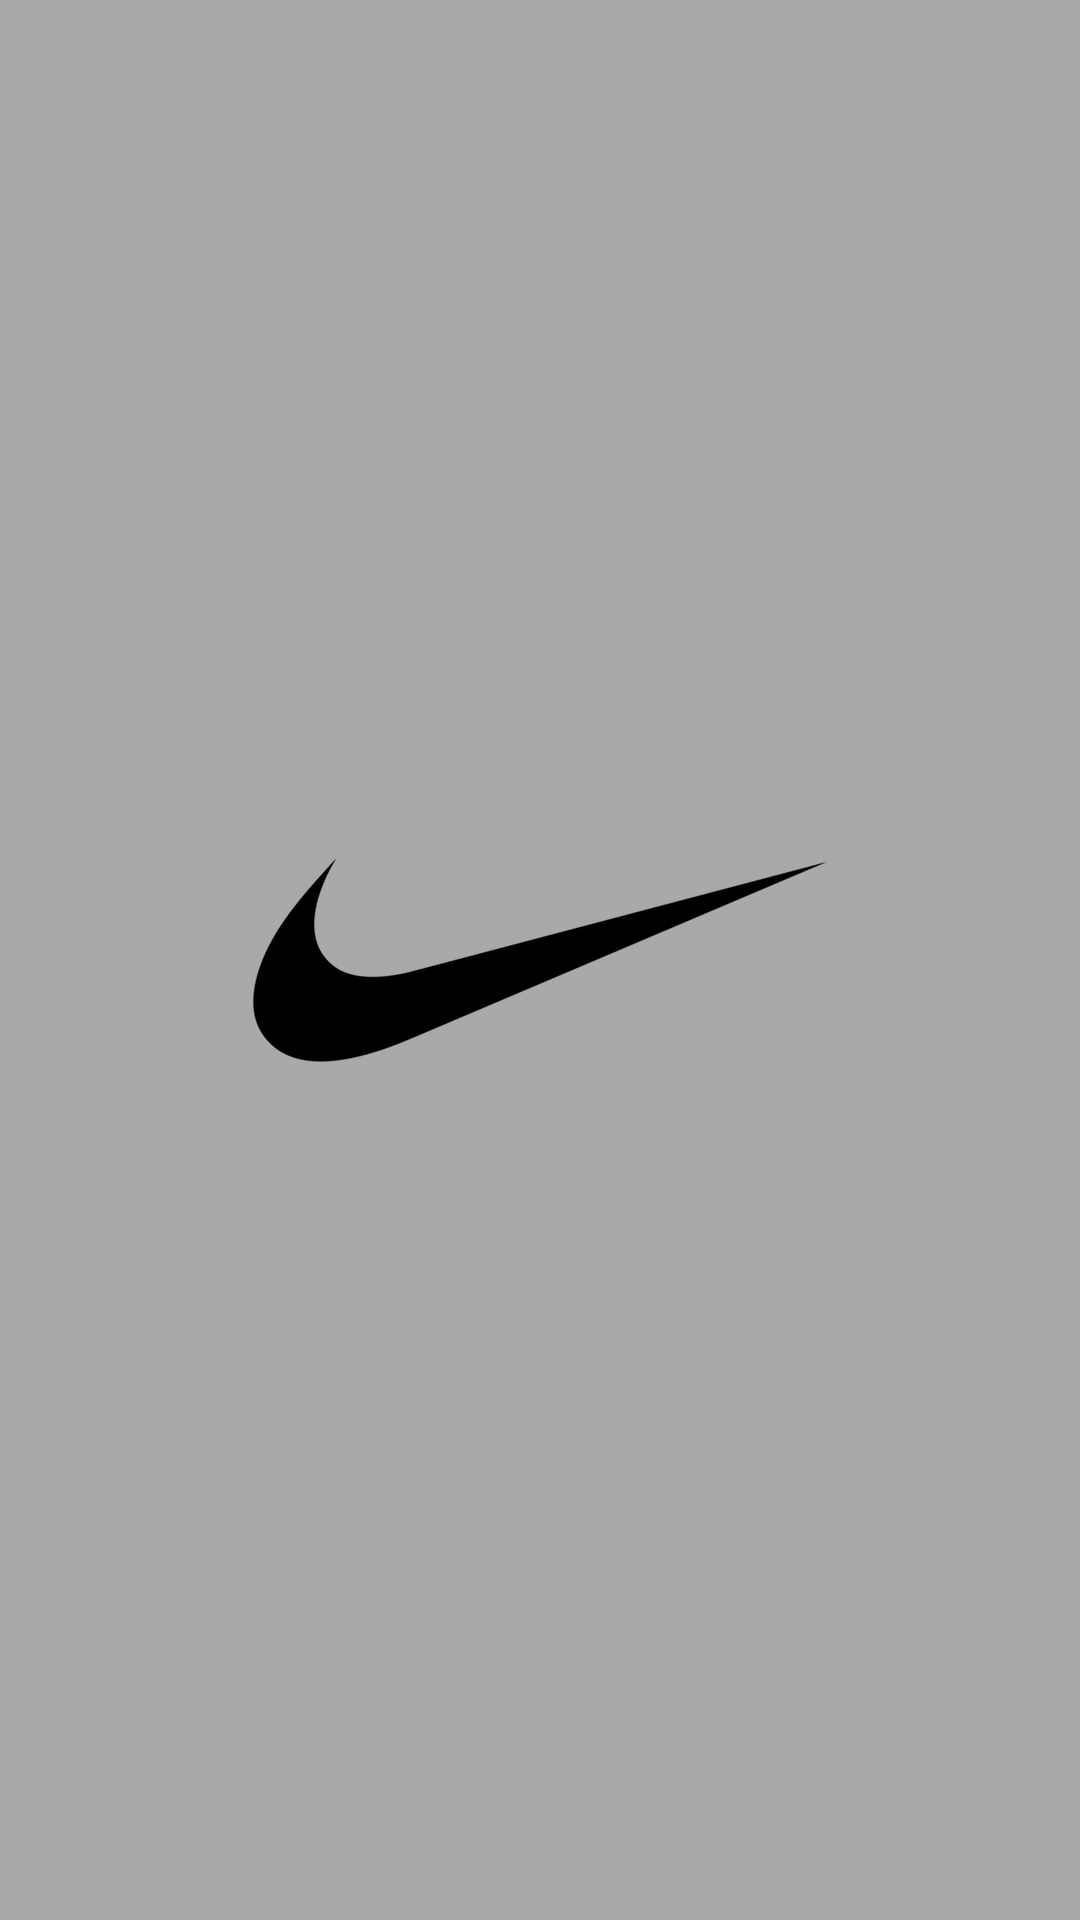 Download New Nike Wallpaper For Iphone Xr This Month 2020